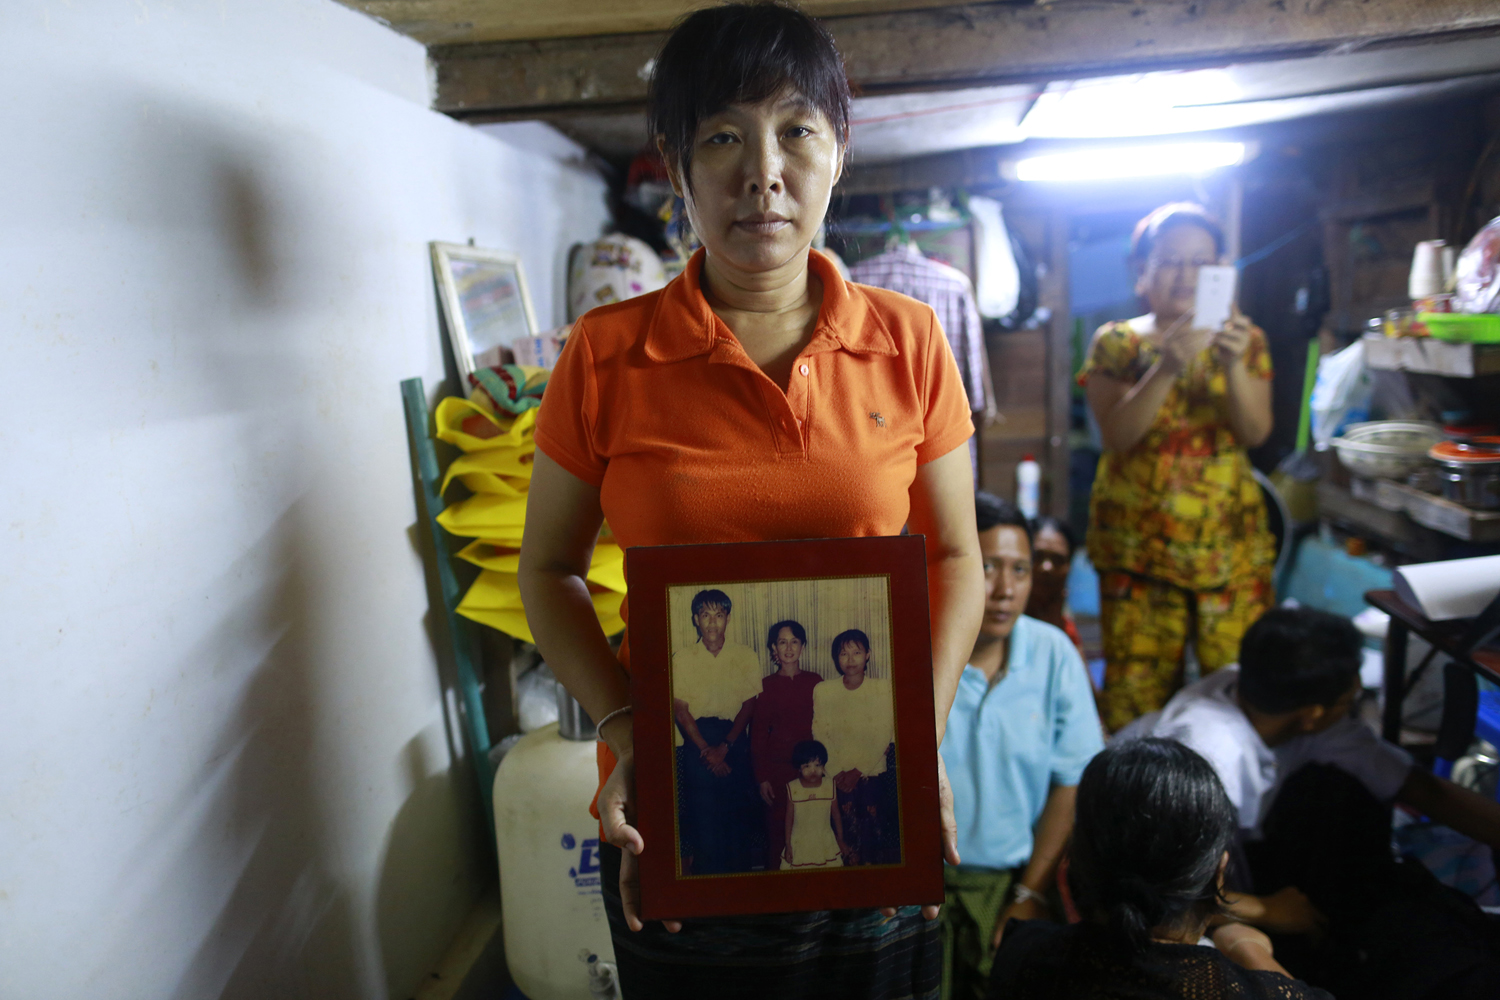 Than Dar, the wife of slain journalist Aung Kyaw Naing, holds a family photograph showing herself, her husband and daughter posing with Aung San Suu Kyi at their home, in Rangoon, on Oct. 28, 2014